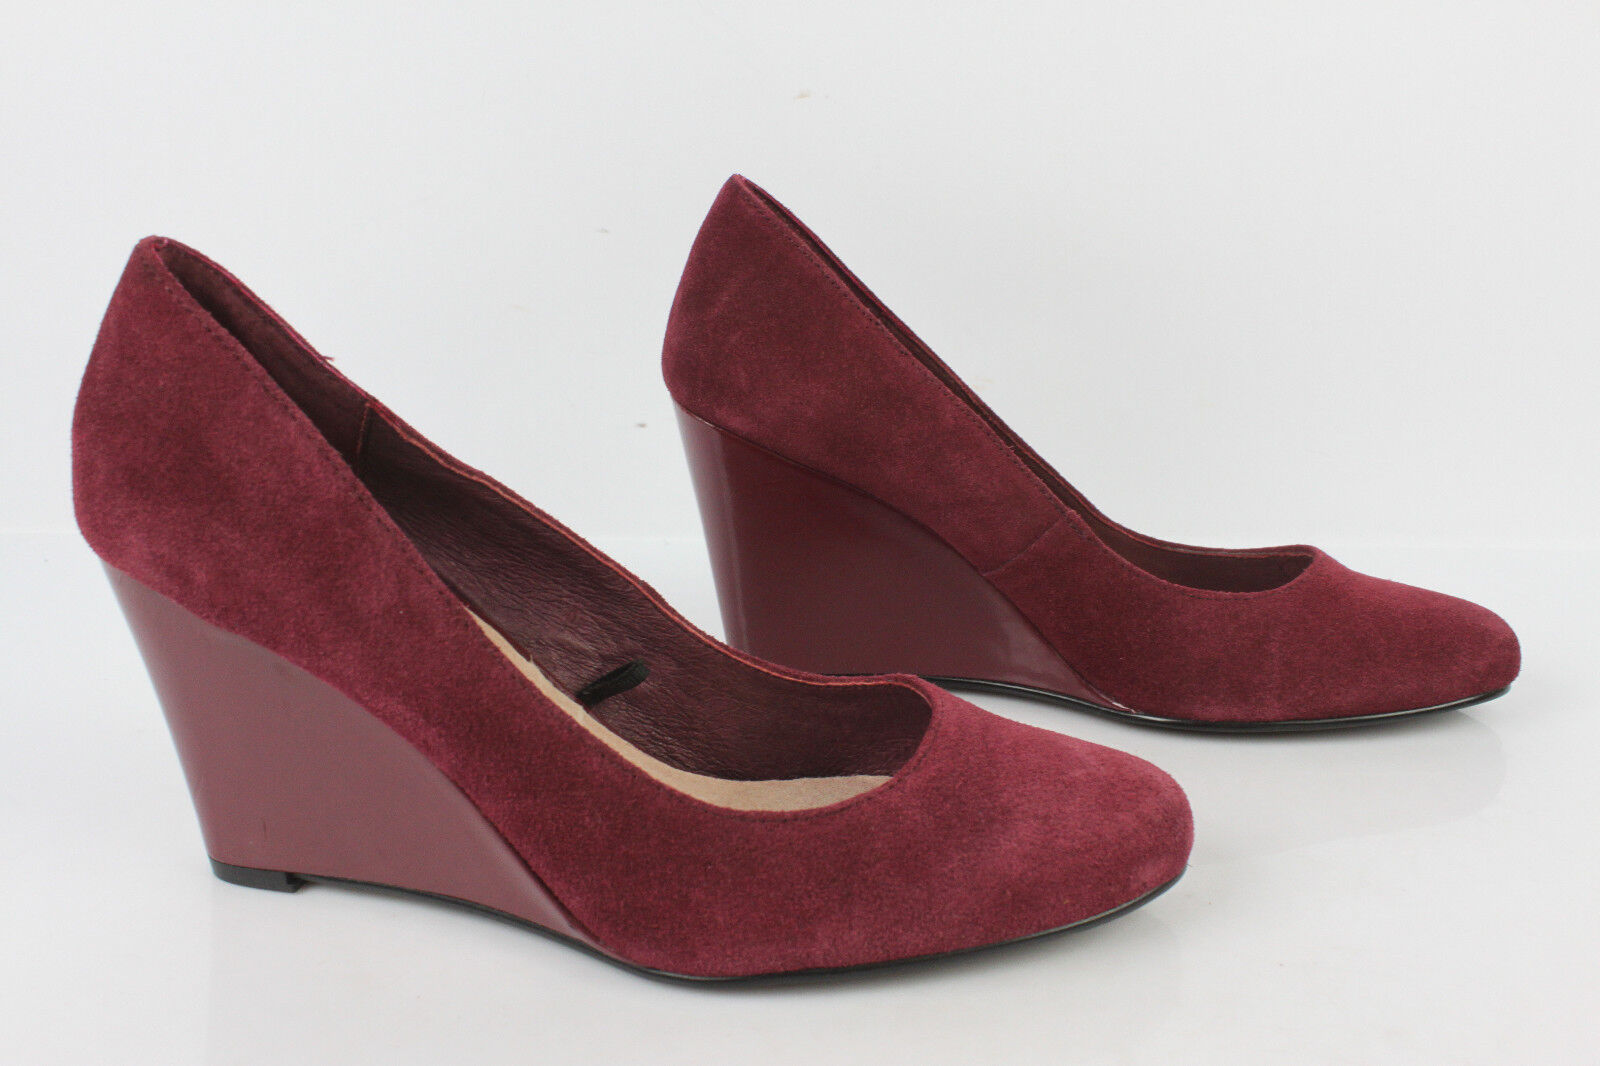 Court shoes Wedge Heels NAF Suede Bordeaux Raspberry T 39 VERY GOOD CONDITION